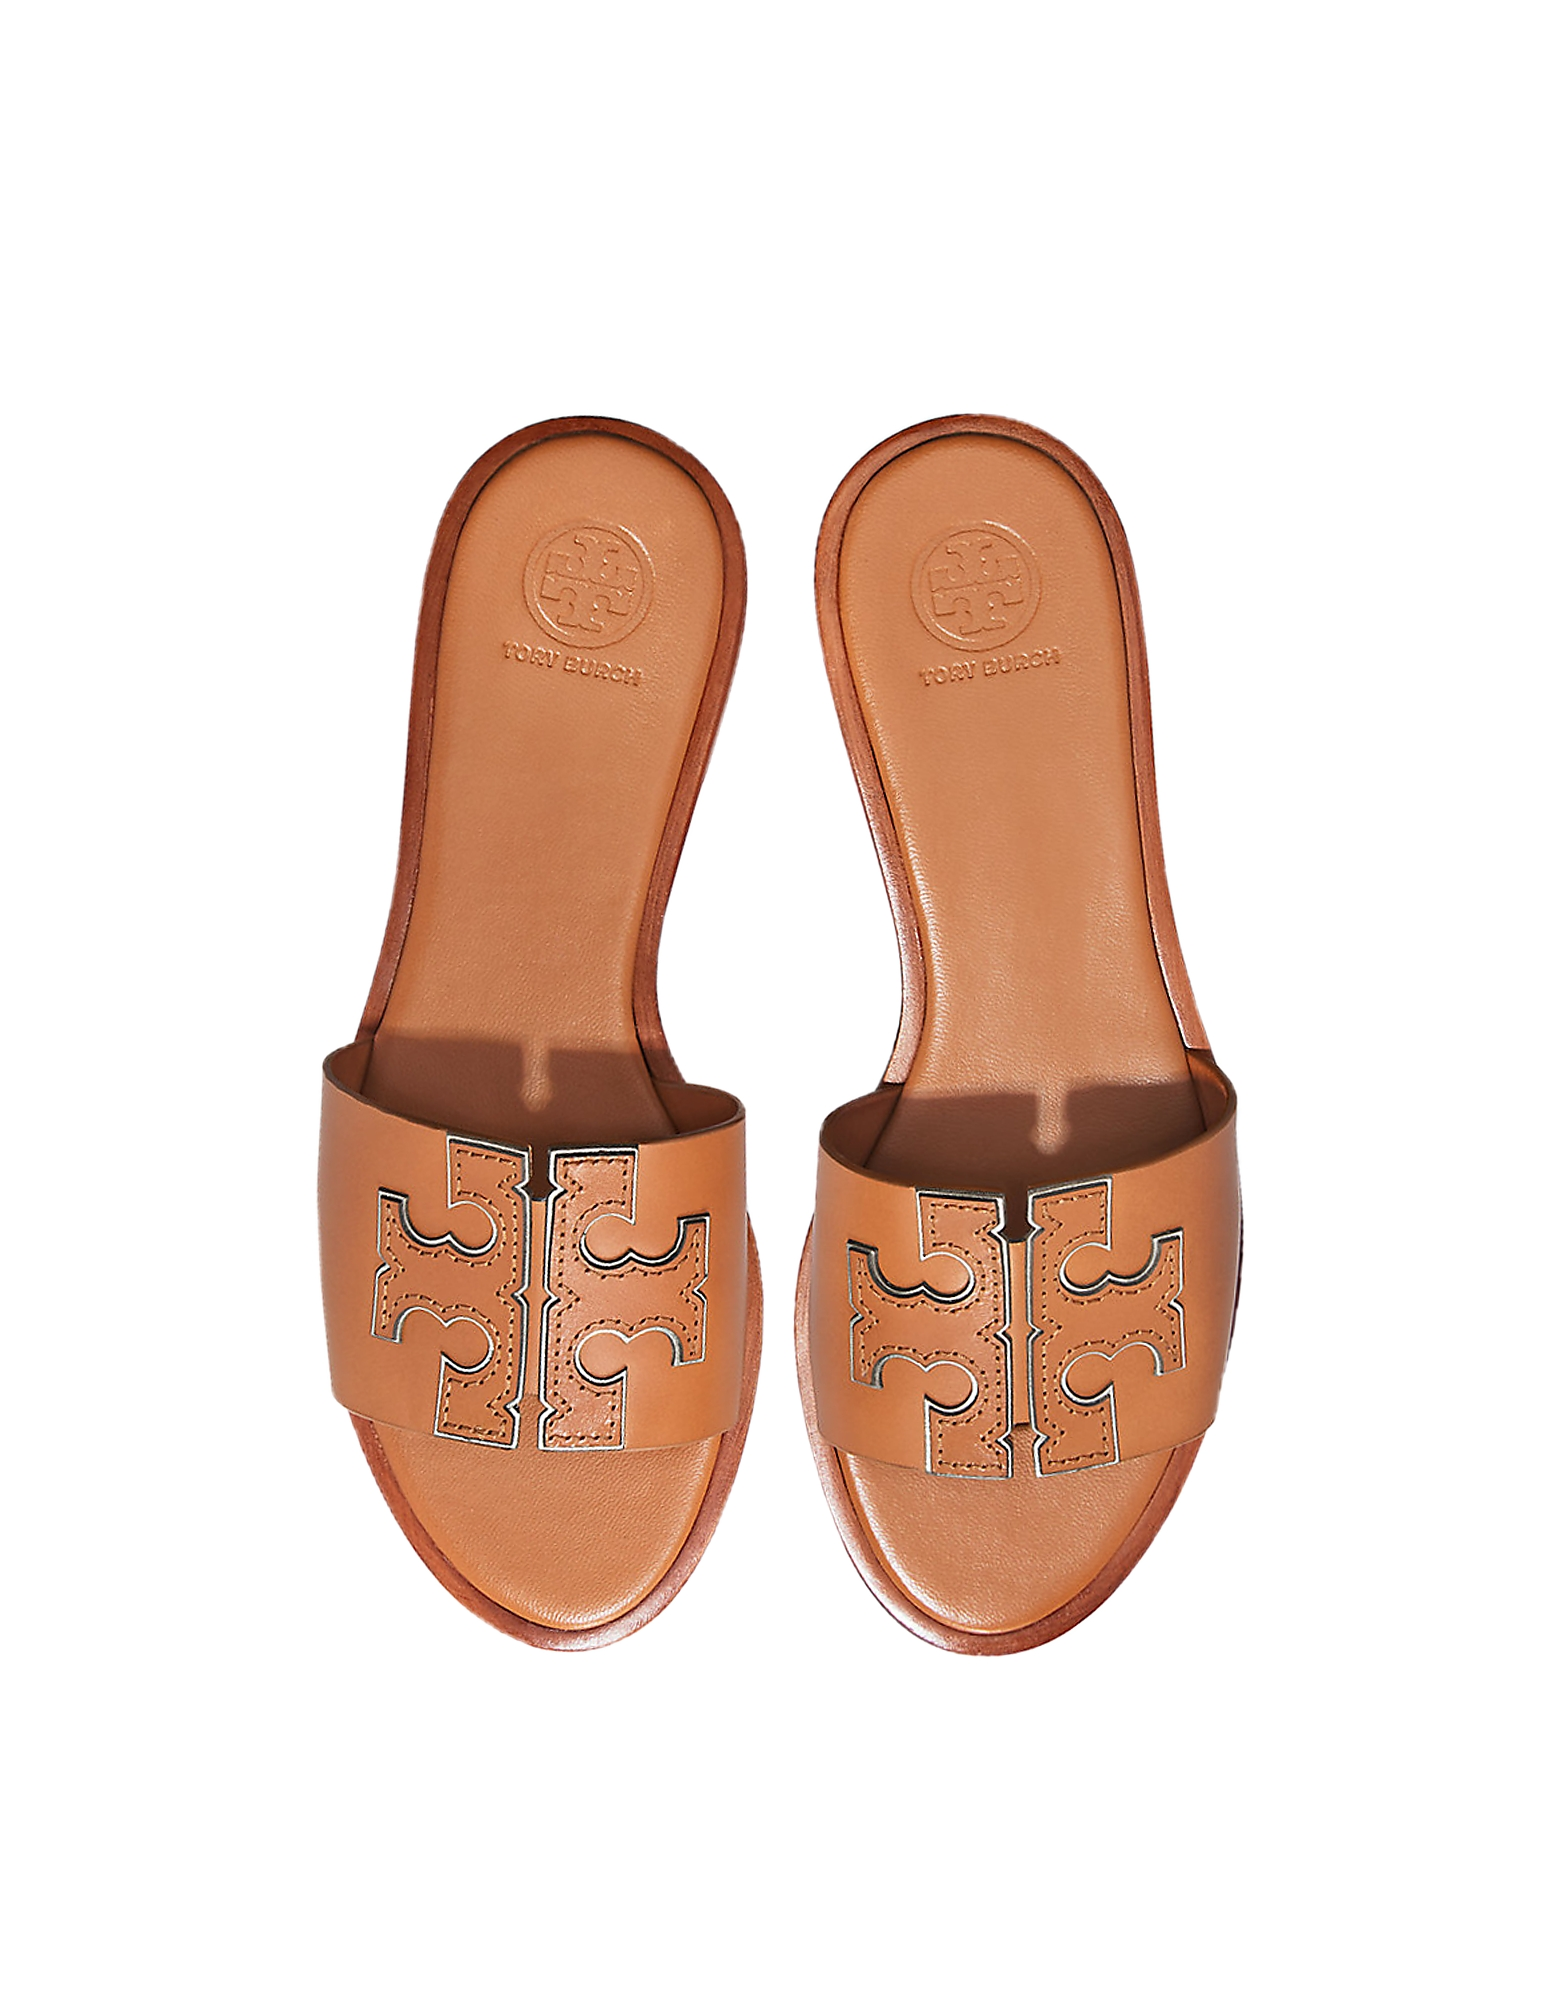 Tory Burch Shoes, Tan Calf Leather Ines Slides